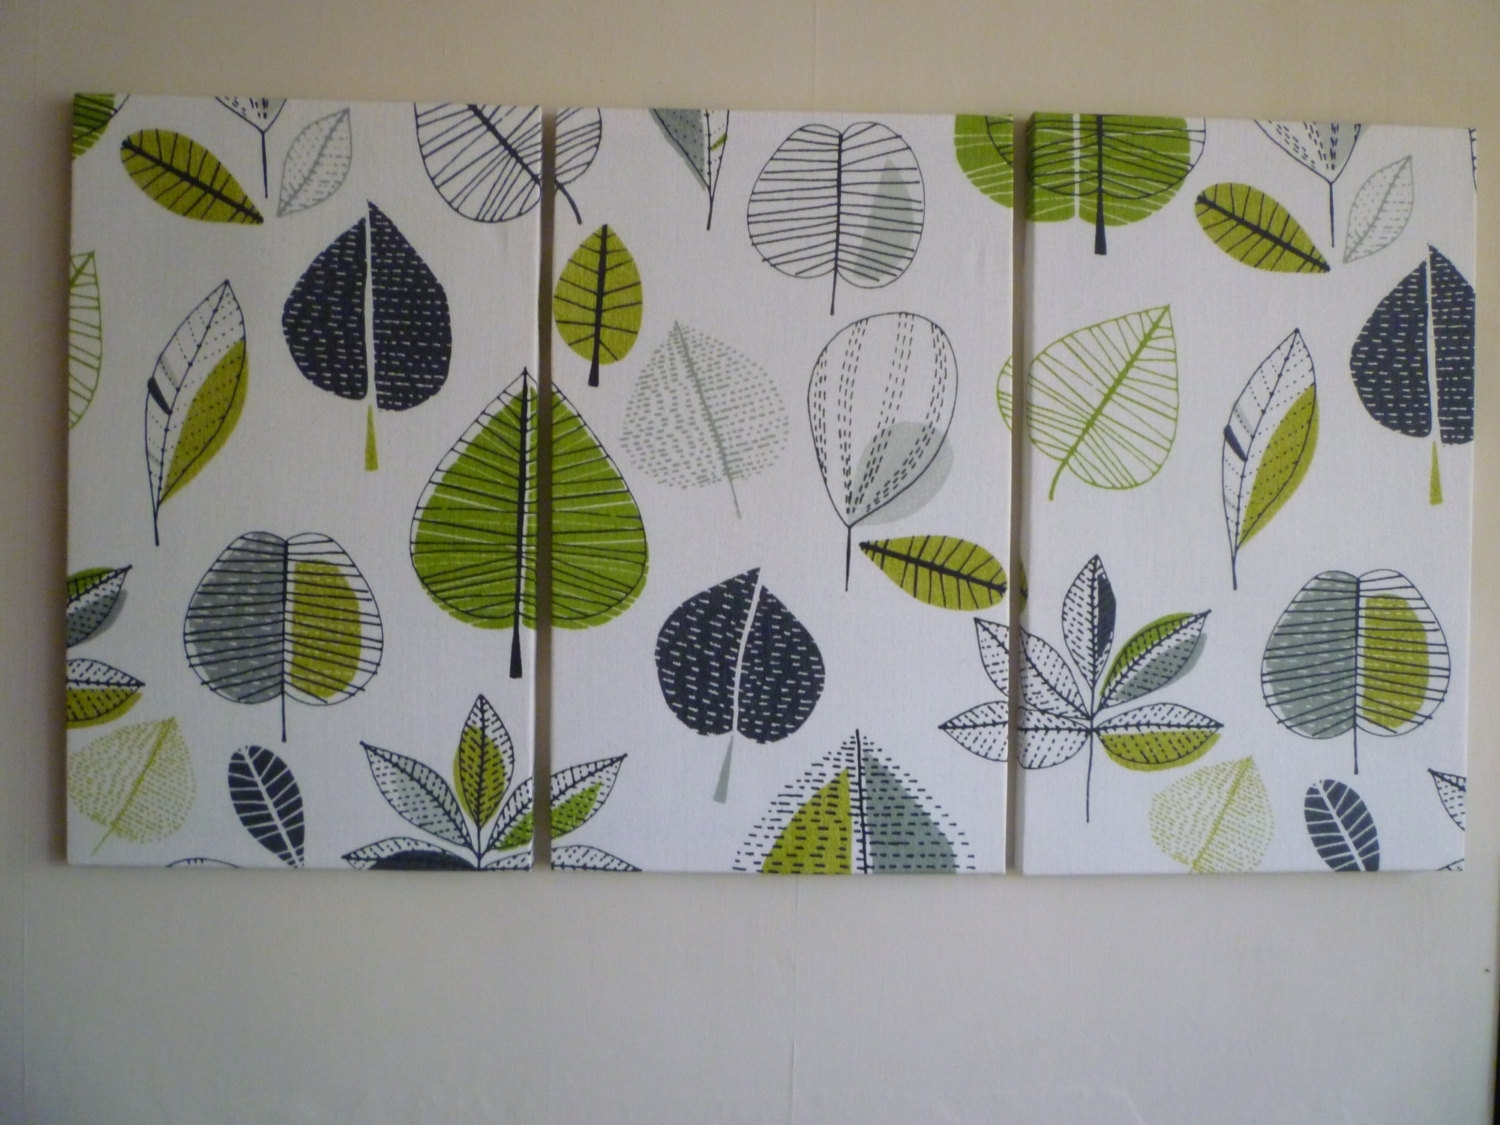 Wall Art Designs: Fabric Wall Art Big Lime Green Fabric Wall Art Intended For Latest Modern Fabric Wall Art (View 1 of 15)